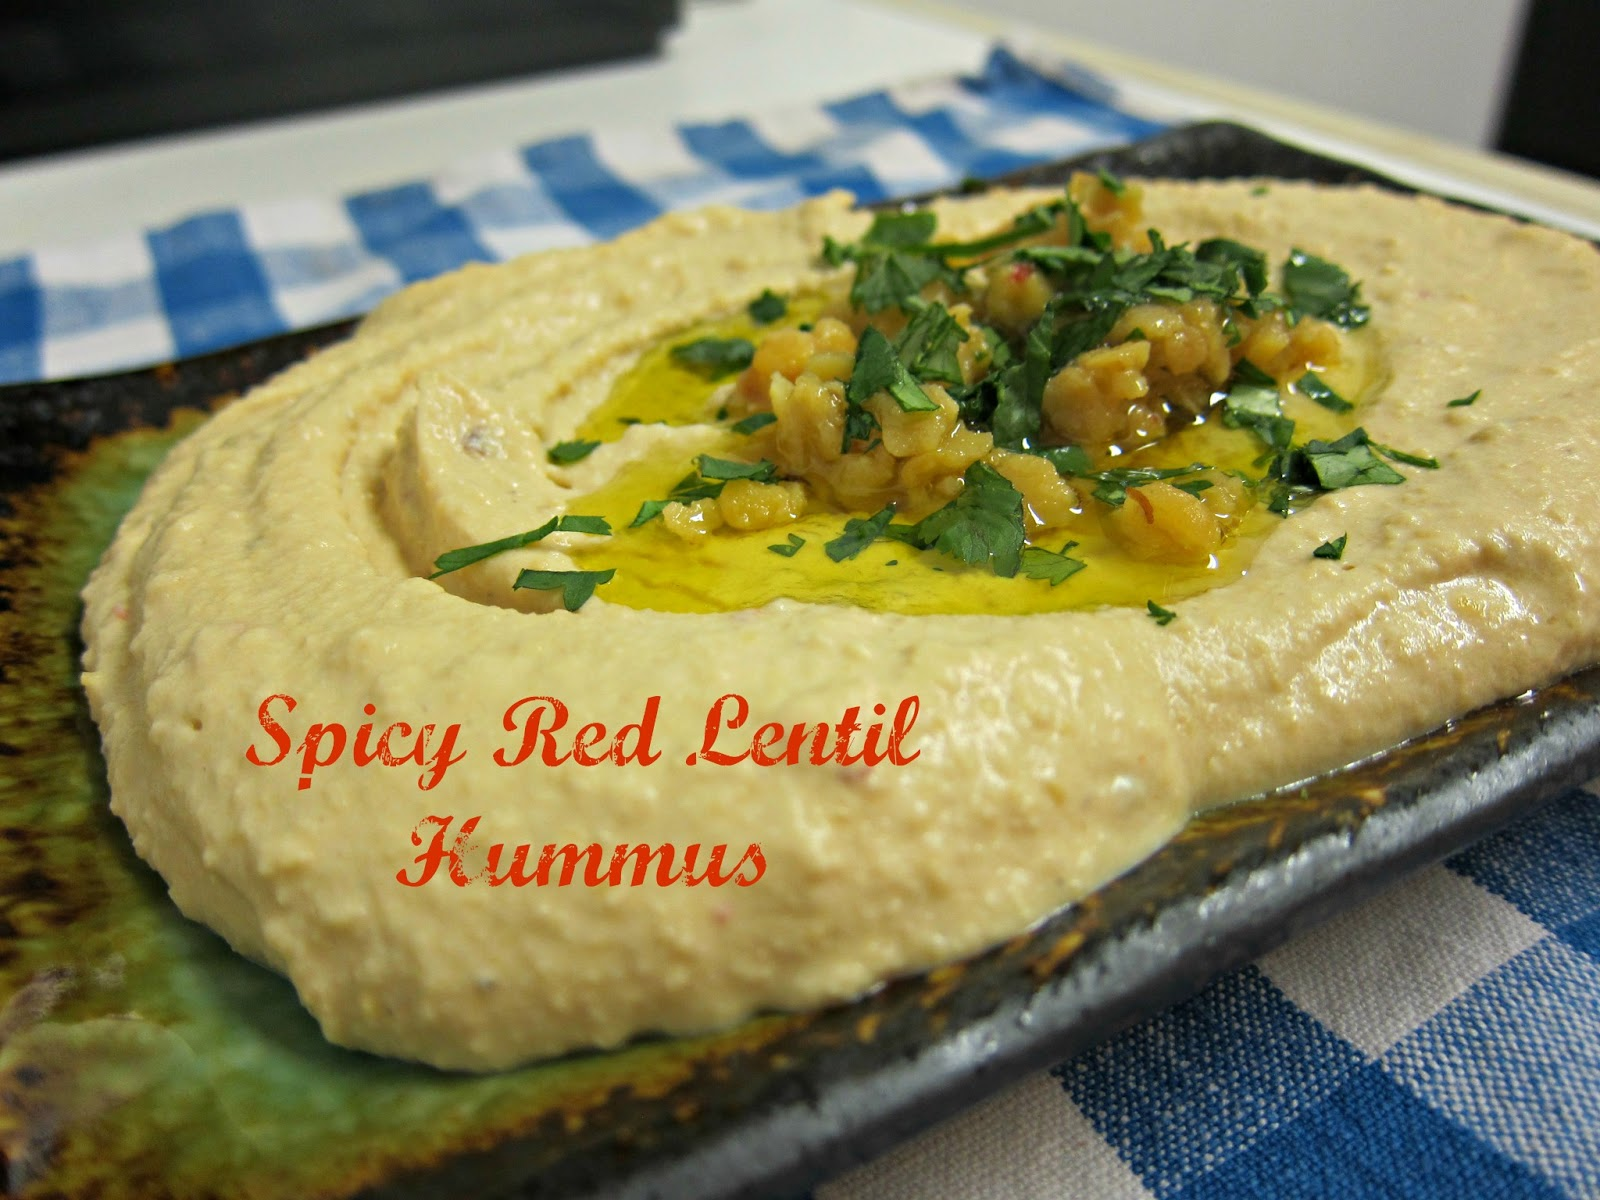 spicy red lentil hummus 1 1 2 cups red lentils